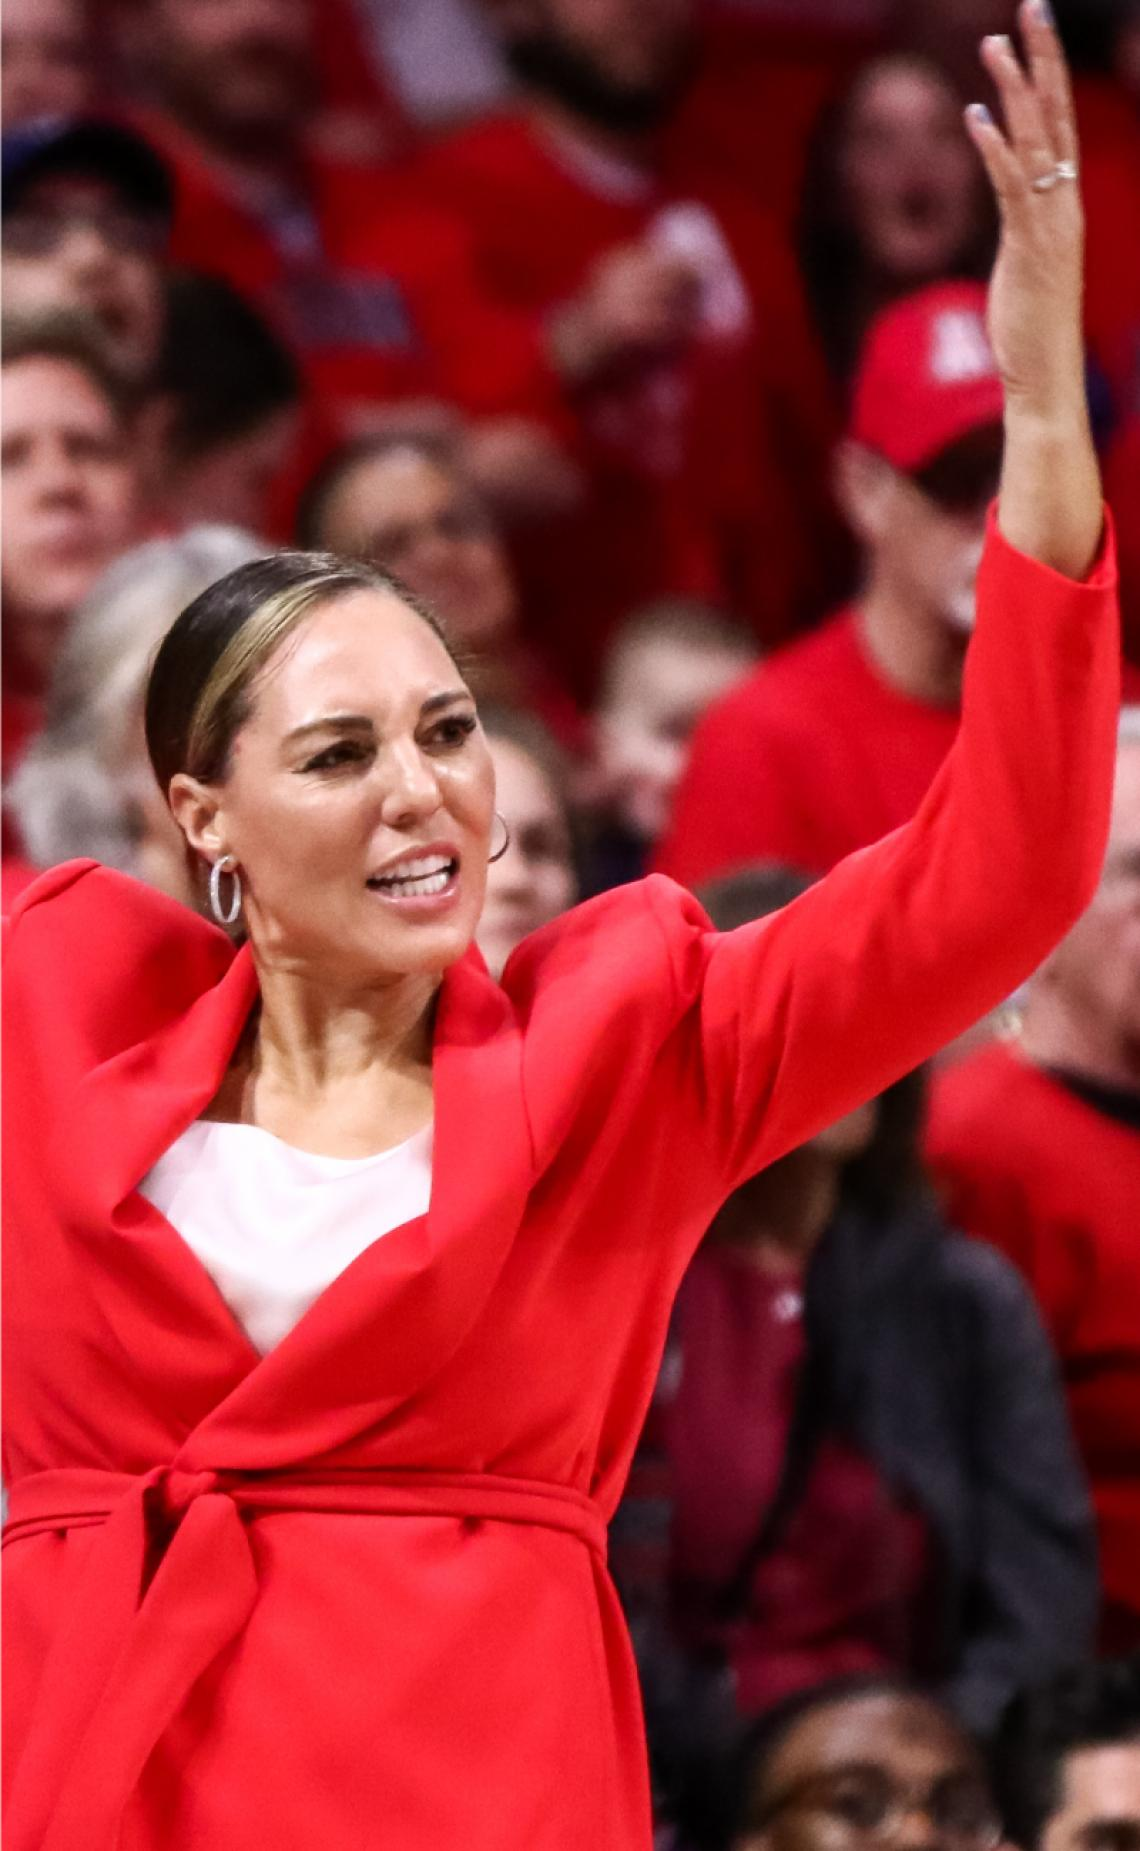 Women's Basketball Coach Adia Barnes and she challenges a call during a game, her hands are held up in protest